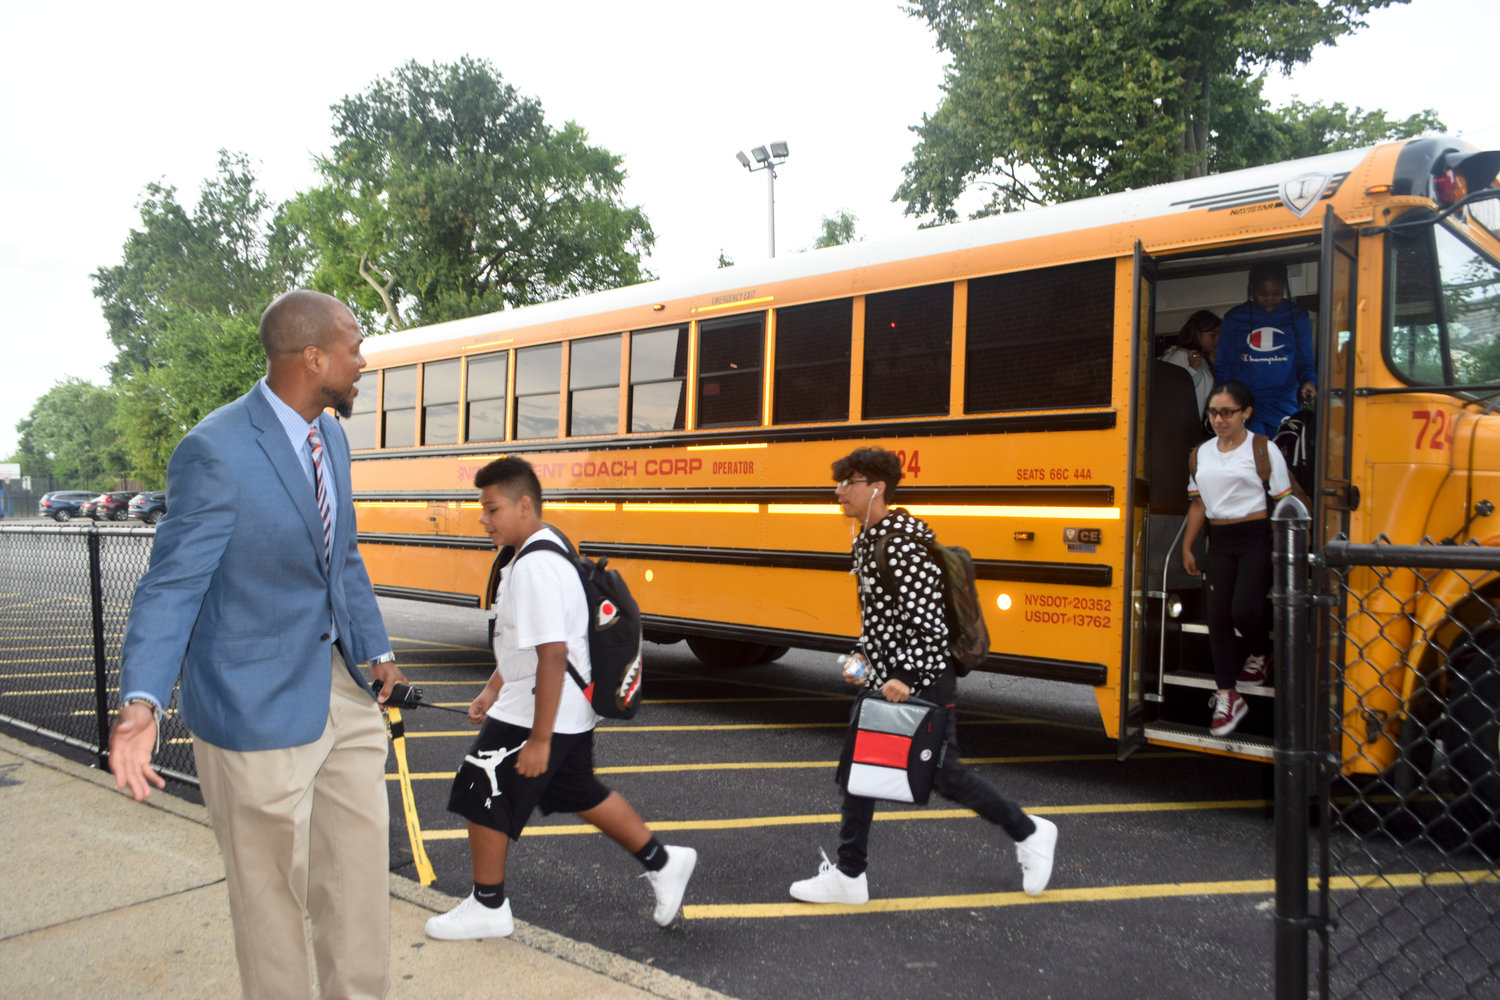 : Lawrence Middle School Principal Willis Perry led the way to a new school year for students on Sept. 5.